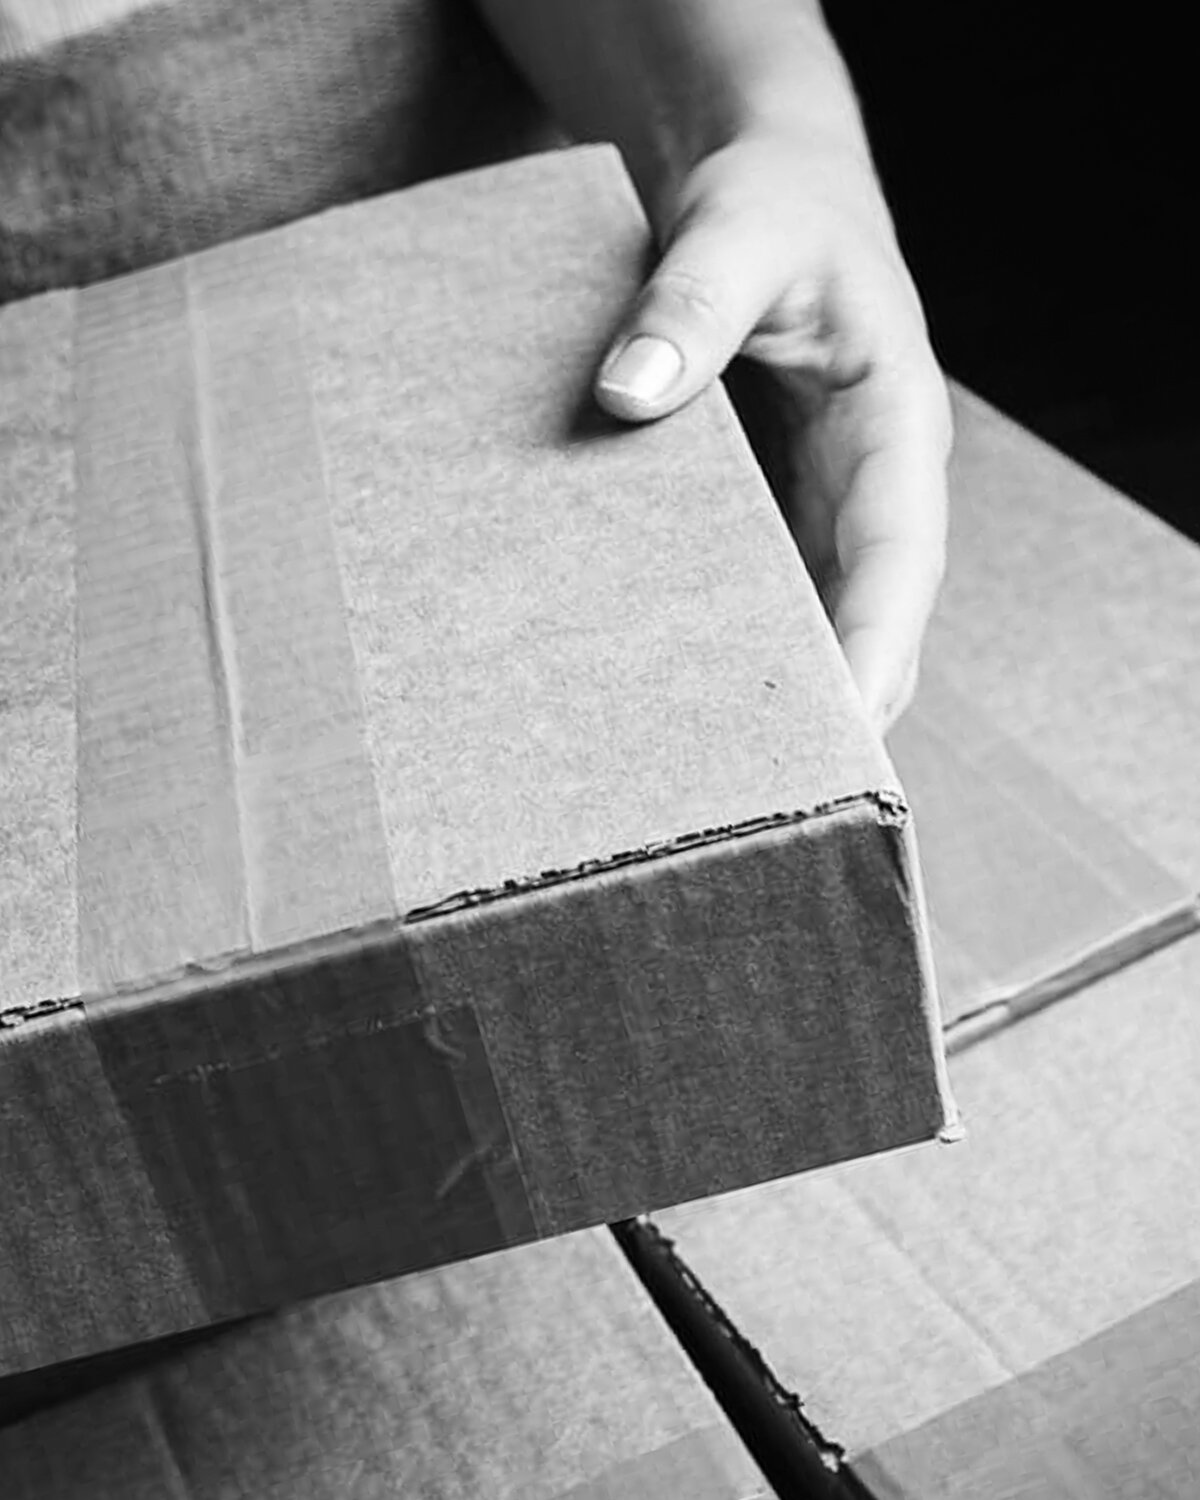 Shipping + Delivery - Shipping will be handled within 14 days. Prints will be sent to your doorsteps by courier, postcards by mail (postal service). If you have prints and postcards in the same order, you will get them by two separate delivery. Please be careful when filling your order fields, once delivery is sent out and on the way to you, it is no longer possible to update or change your delivery address.